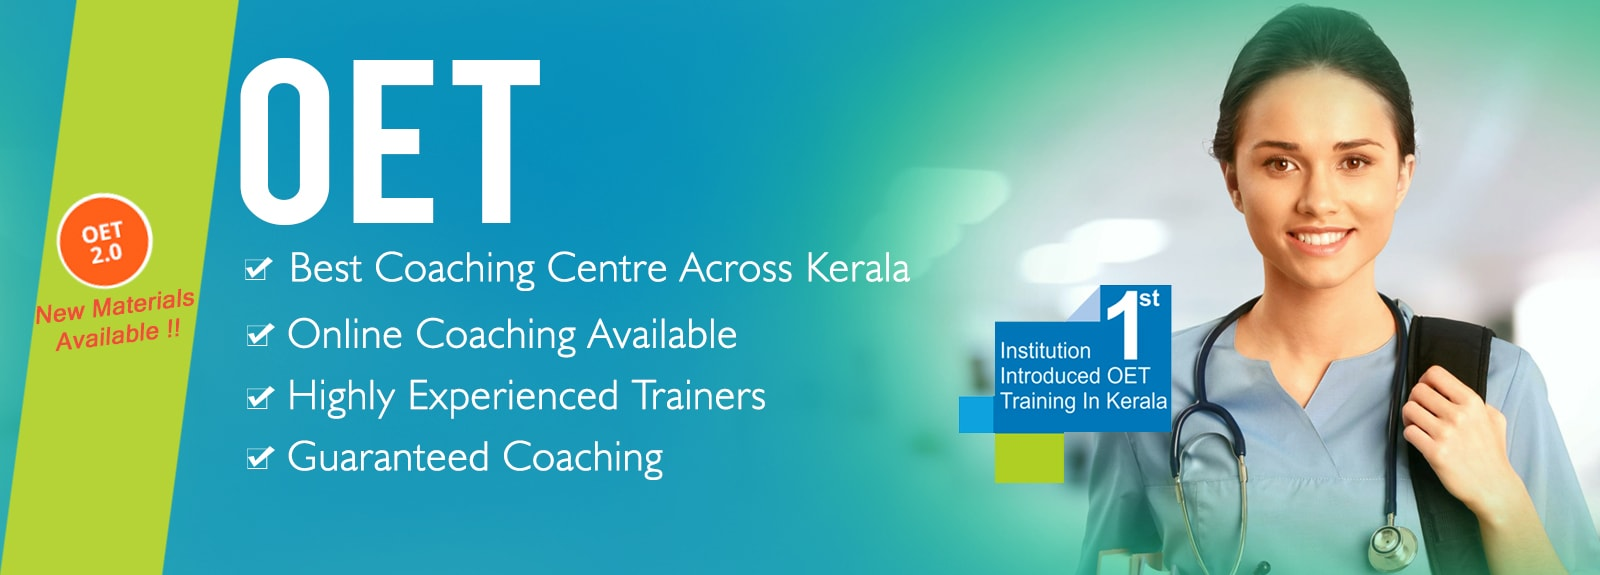 Study Abroad in Kochi, Immigration Consultants in Kottayam, IELTS